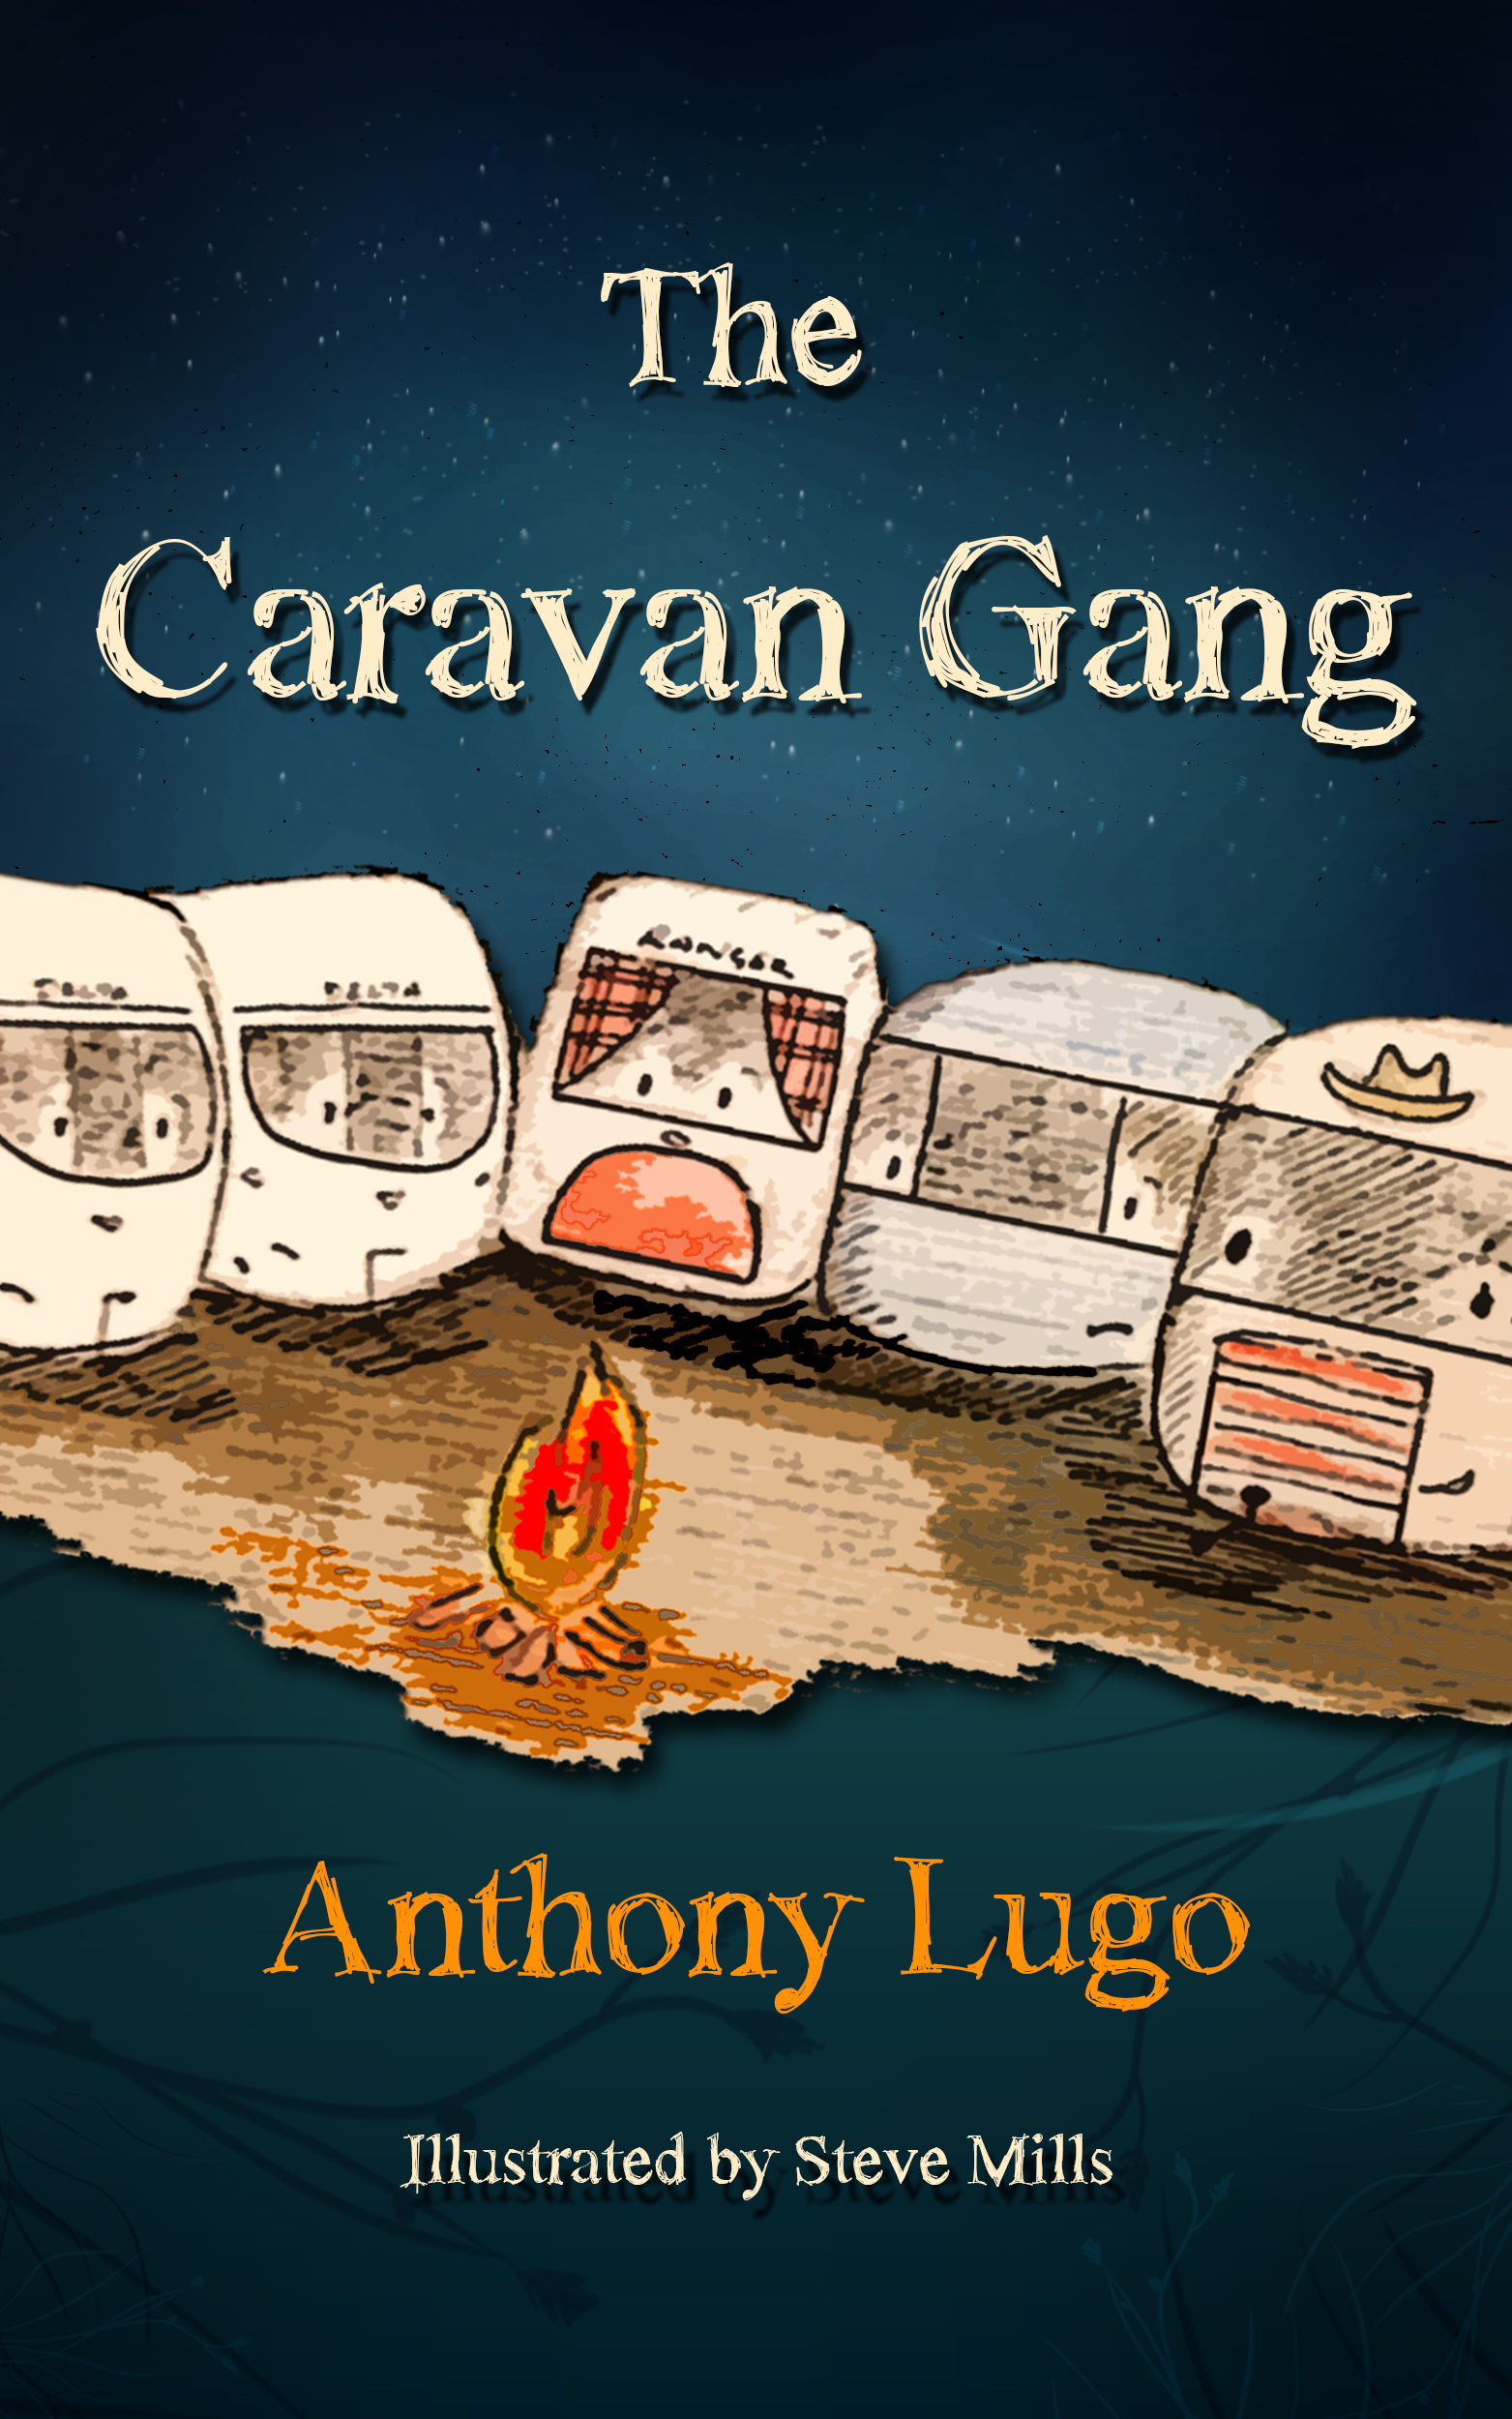 Stories for kids, The Caravan Gang by Anthony Lugo